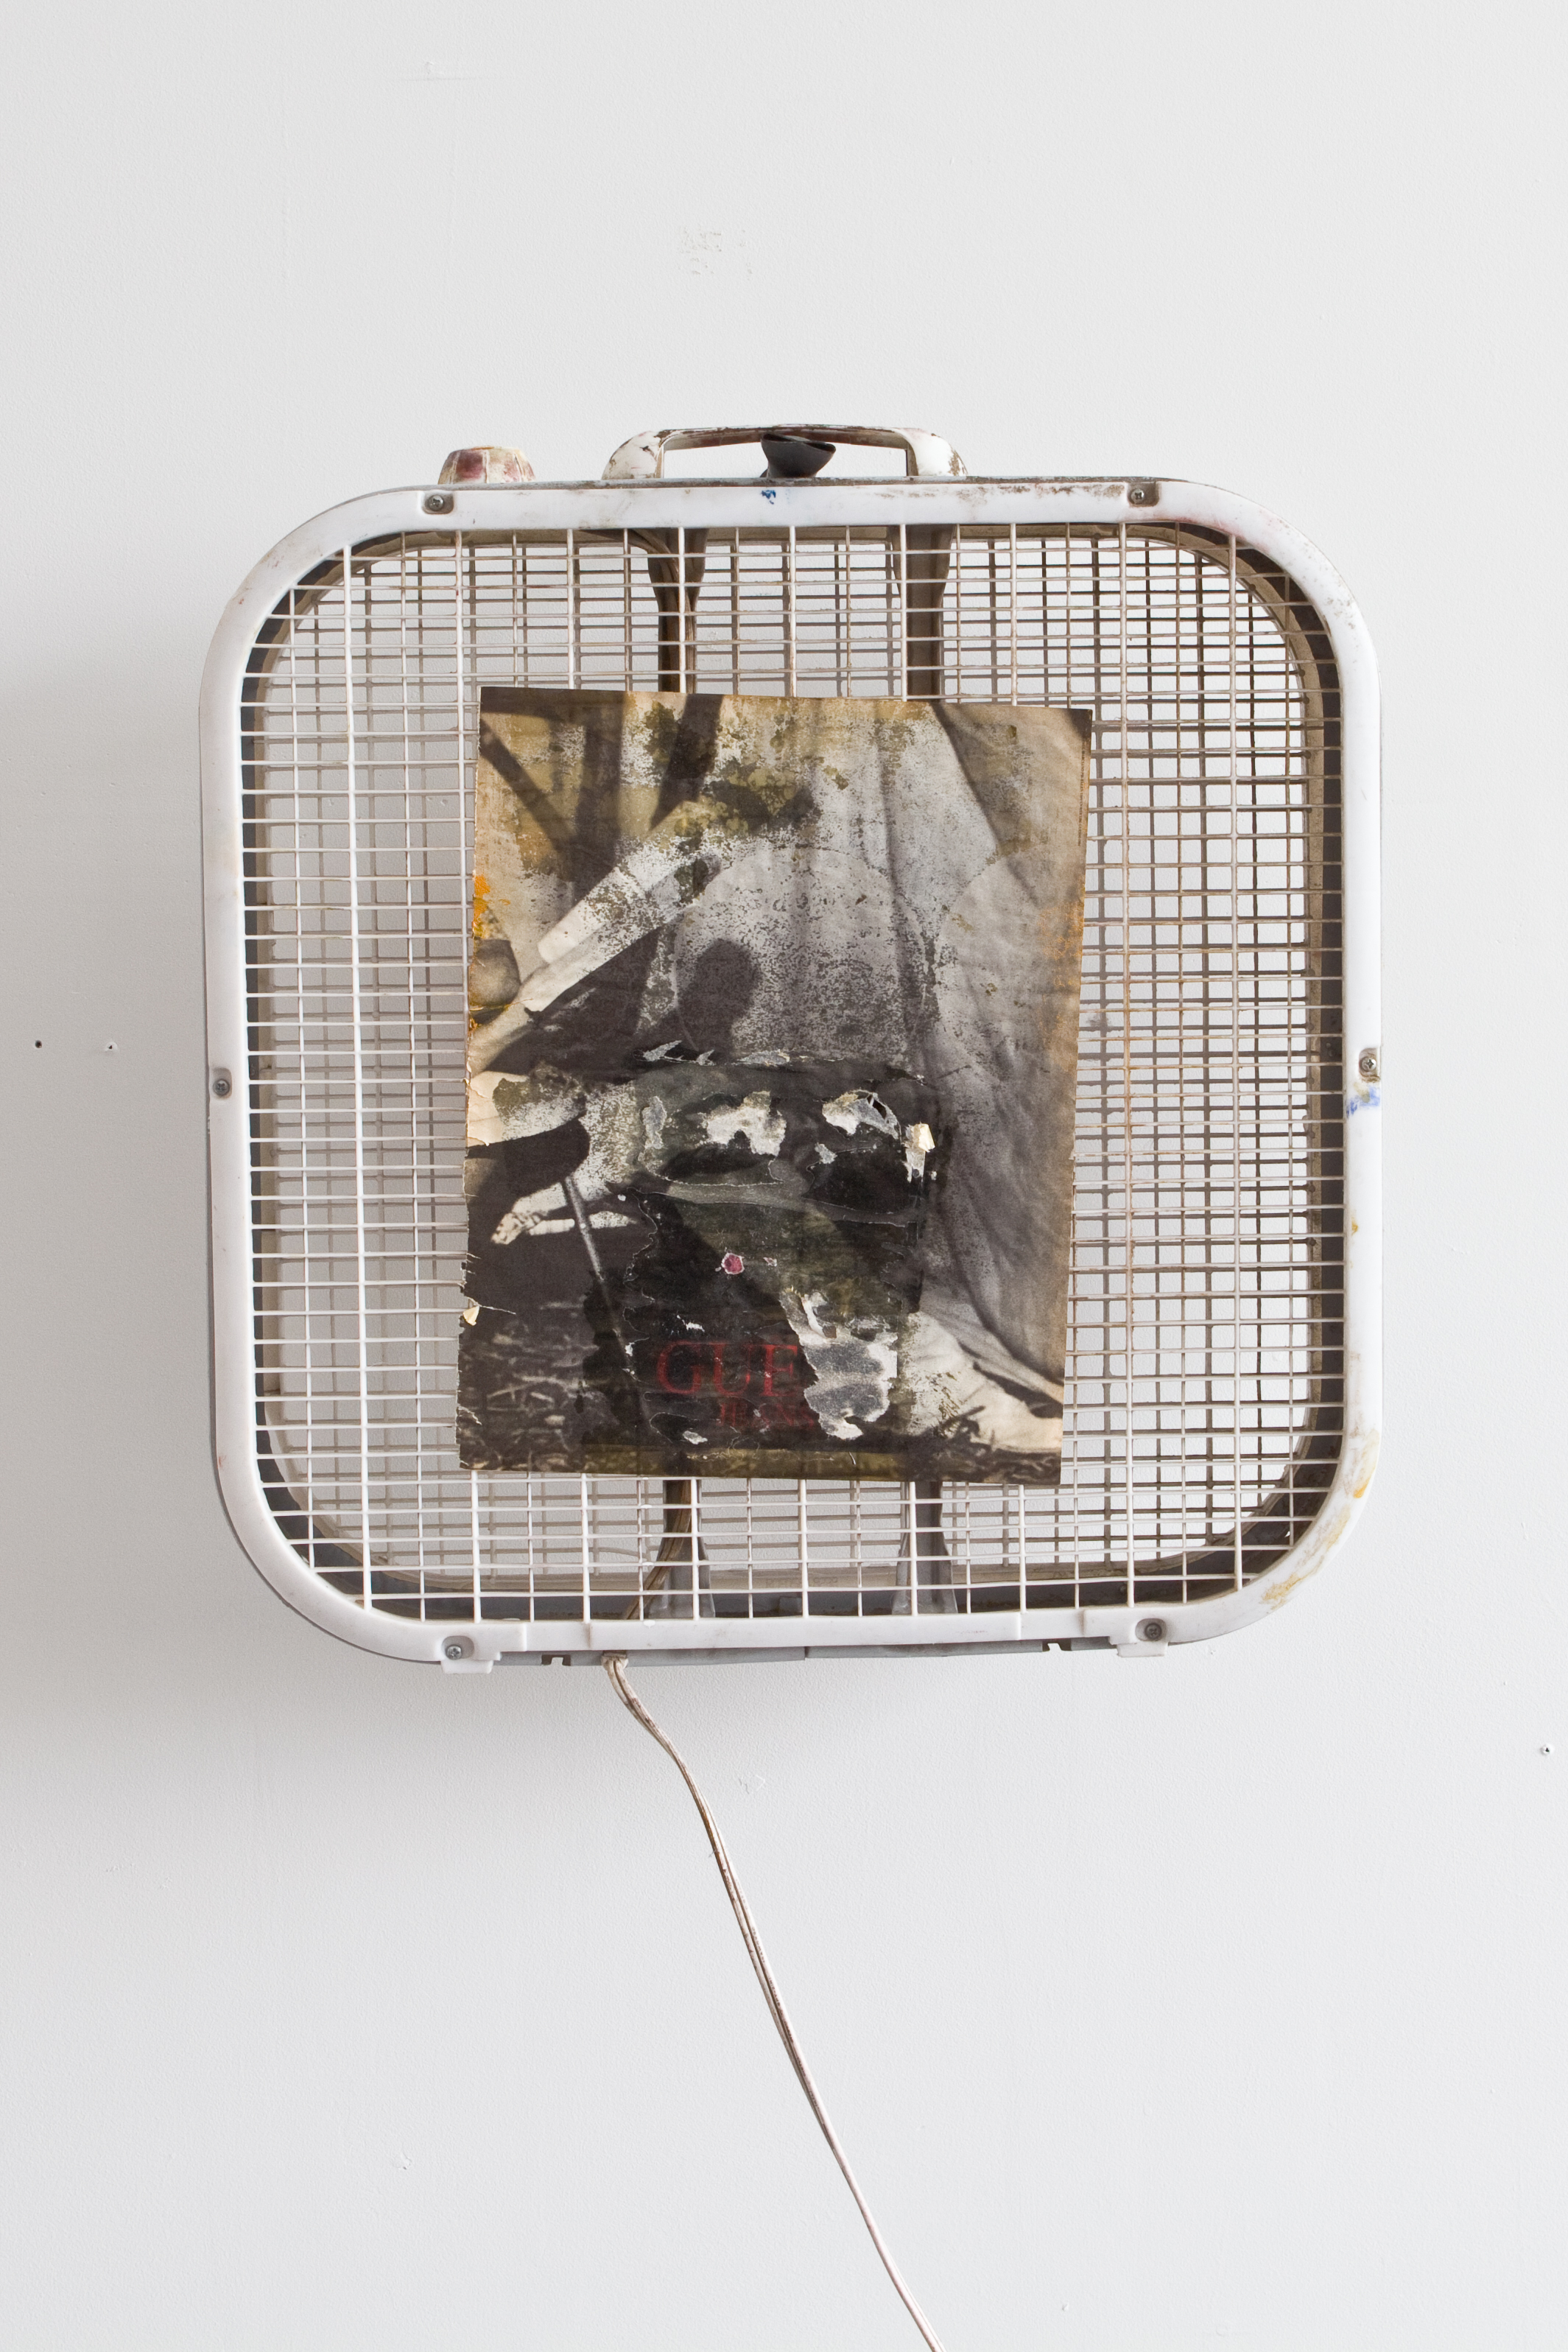 D.S. - 3 | Copper, box fan, found magazine ad, polyurethane, wood stain, ink, spray paint, oil